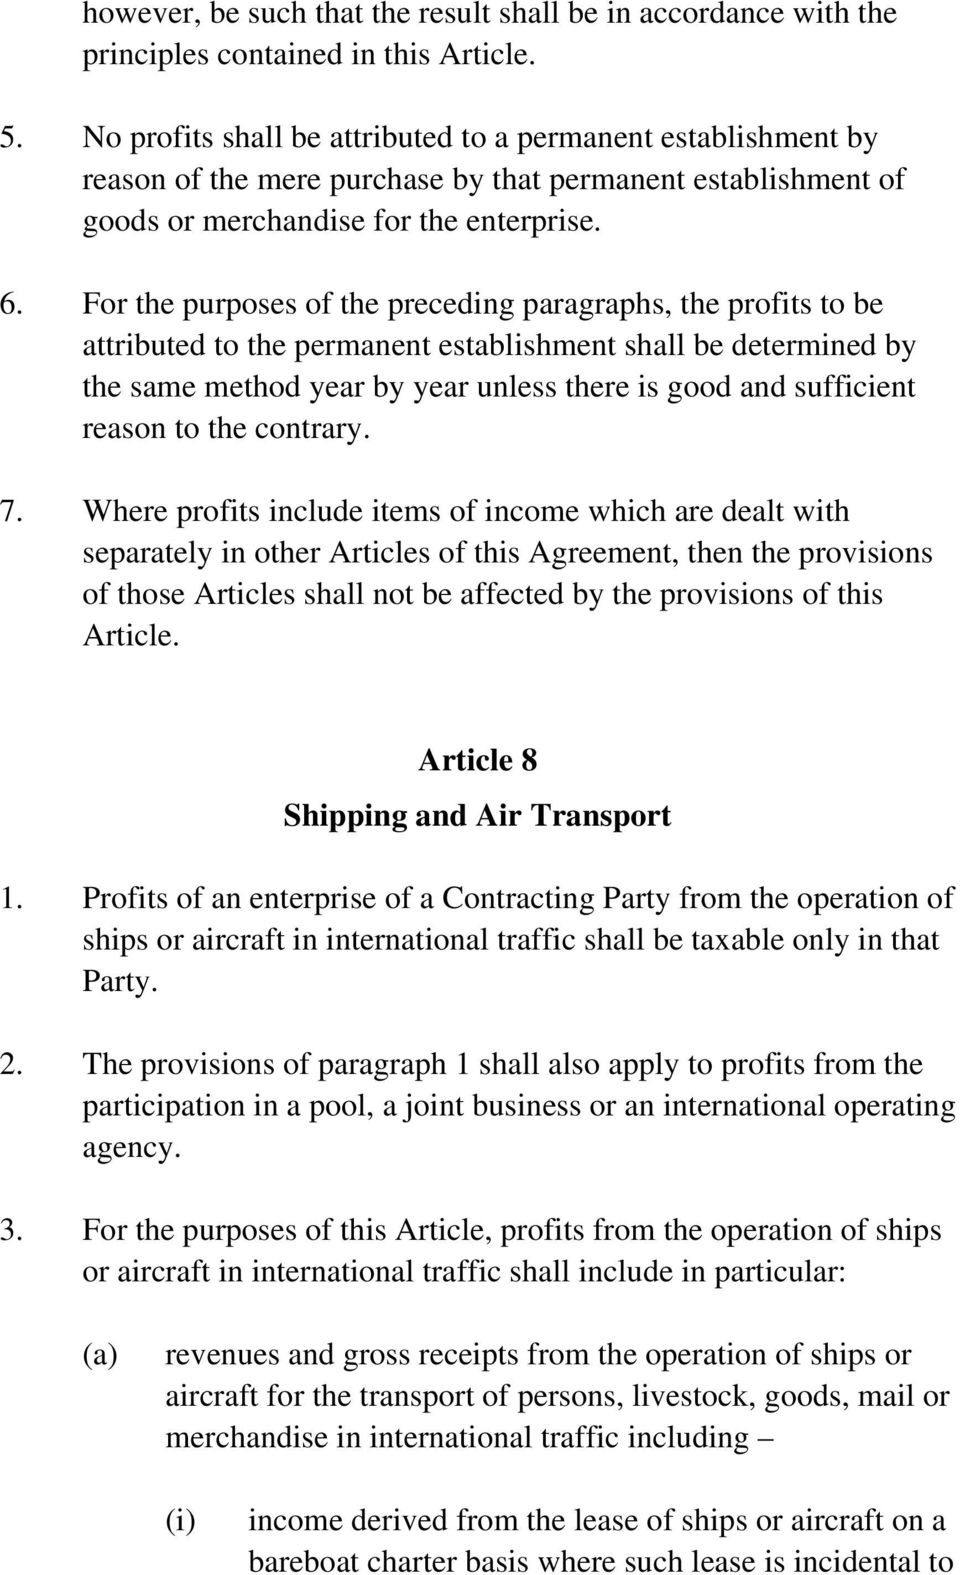 For the purposes of the preceding paragraphs, the profits to be attributed to the permanent establishment shall be determined by the same method year by year unless there is good and sufficient